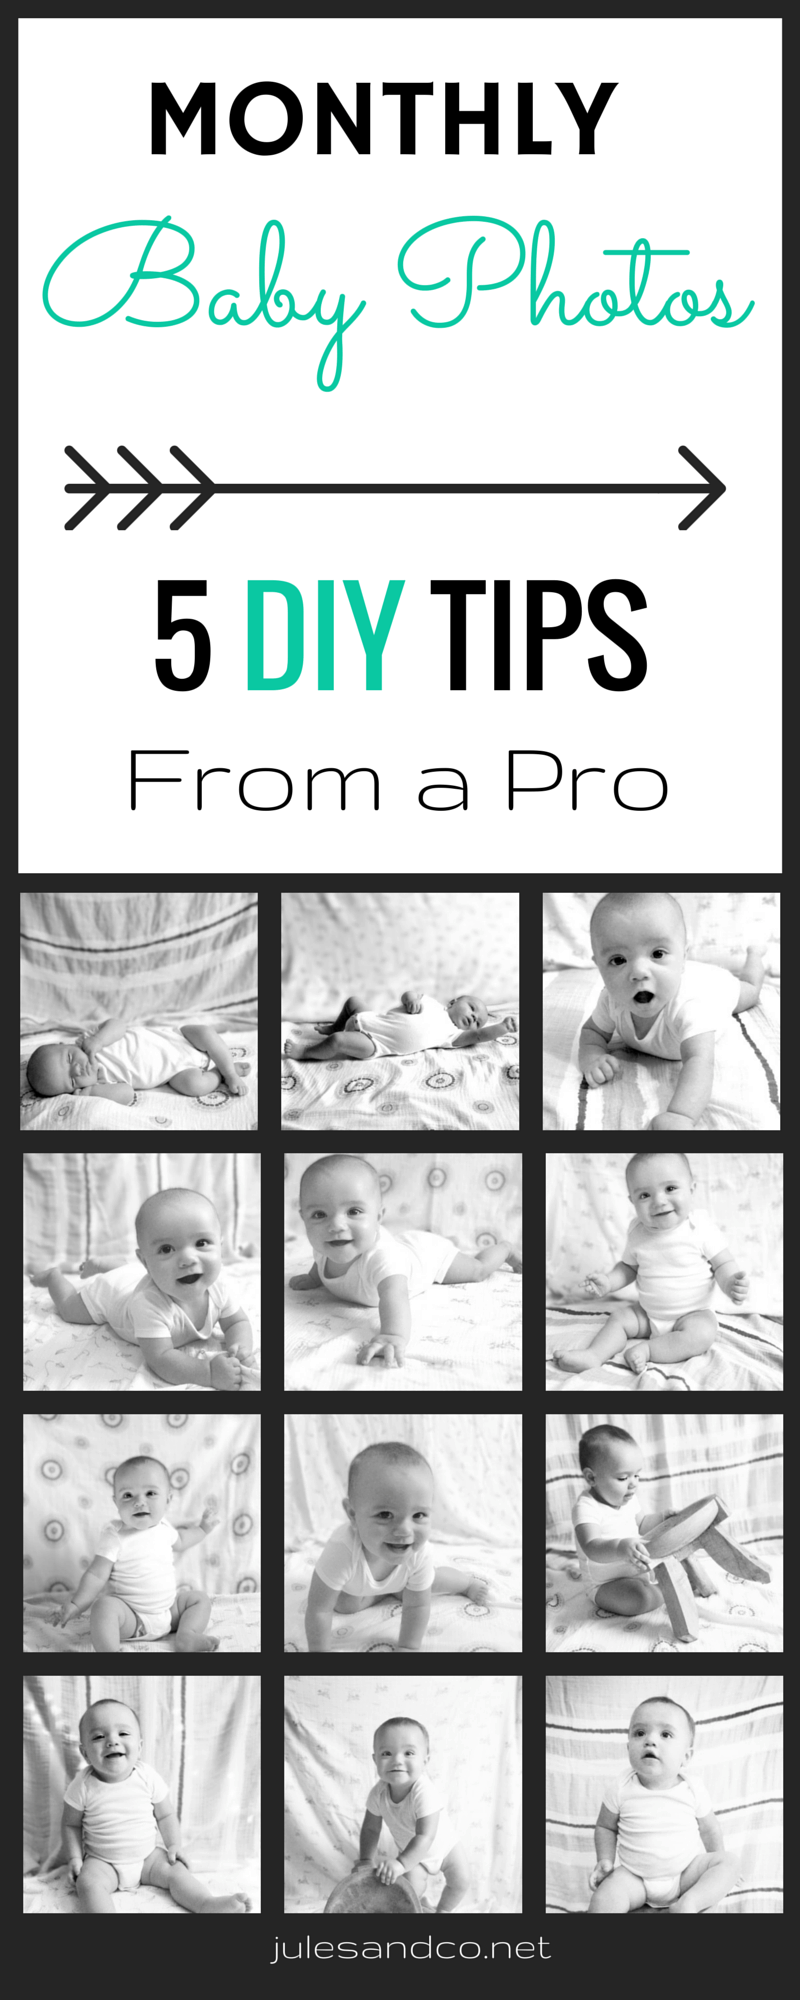 Monthly Baby Photos (5 DIY Tips From a Pro) | Capture your baby's first year in photos with these fail-proof baby photography tips! | julesandco.net